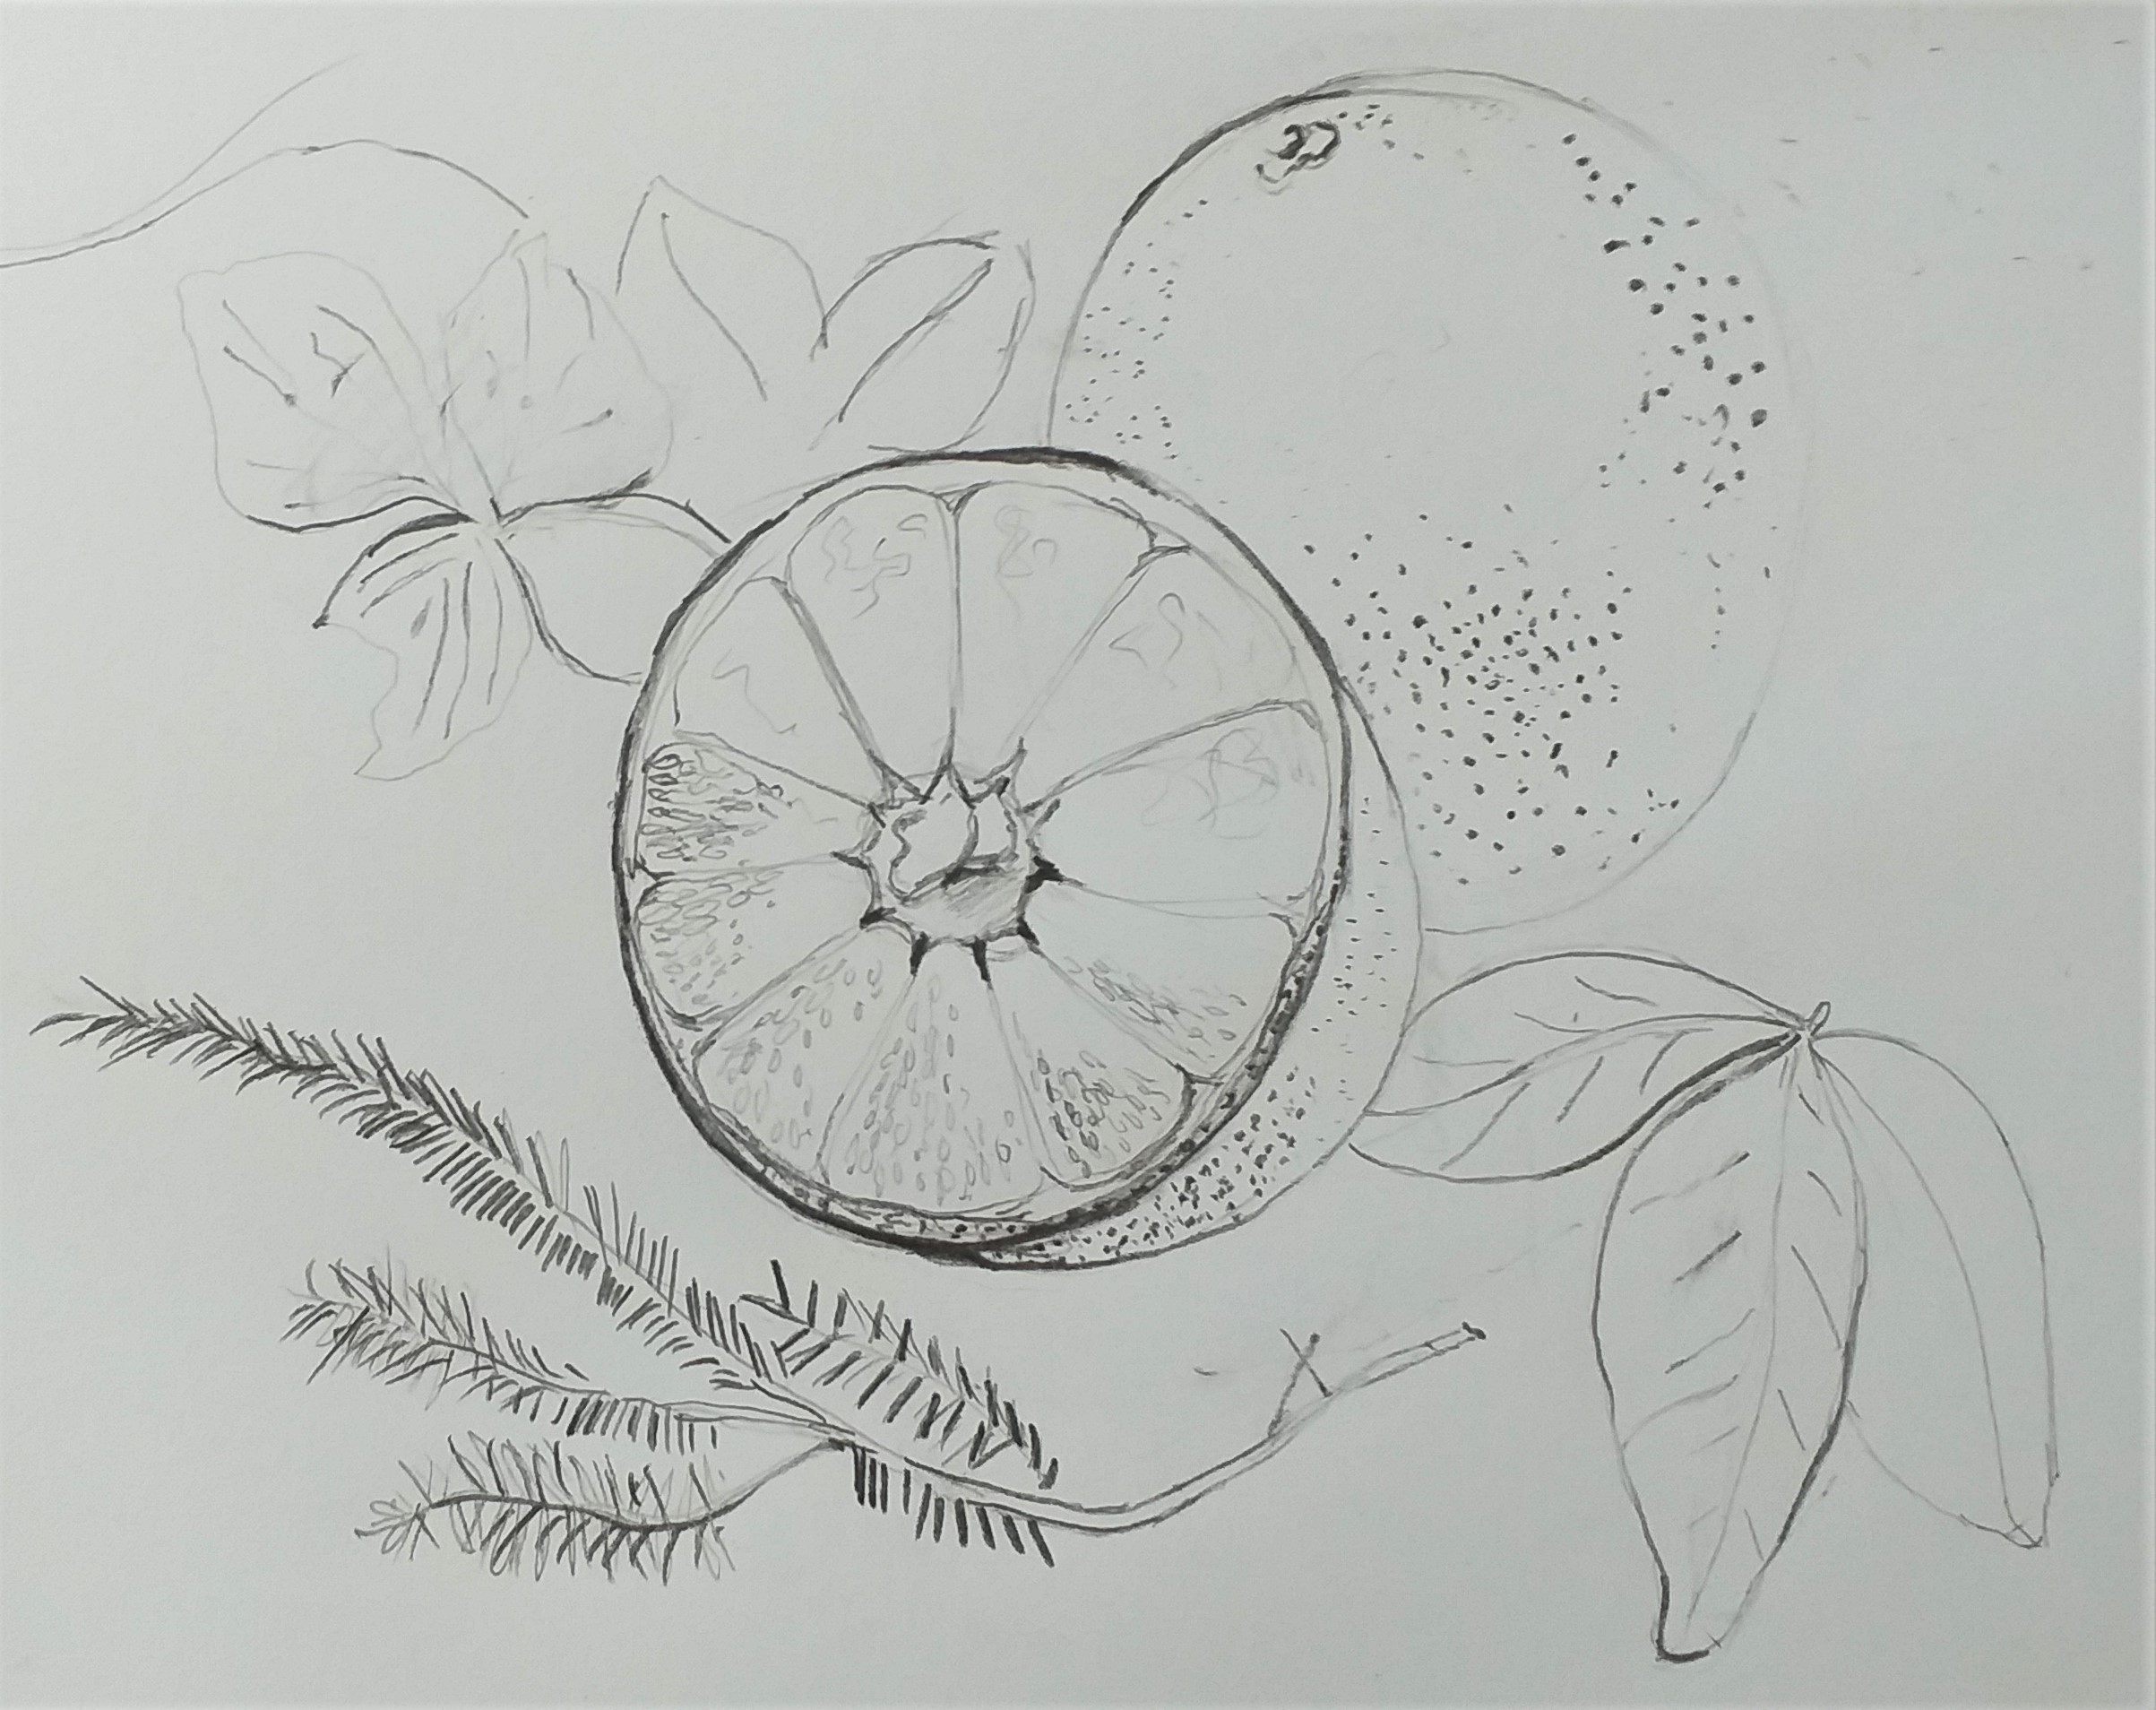 Linda's line drawing of fruit and leaves